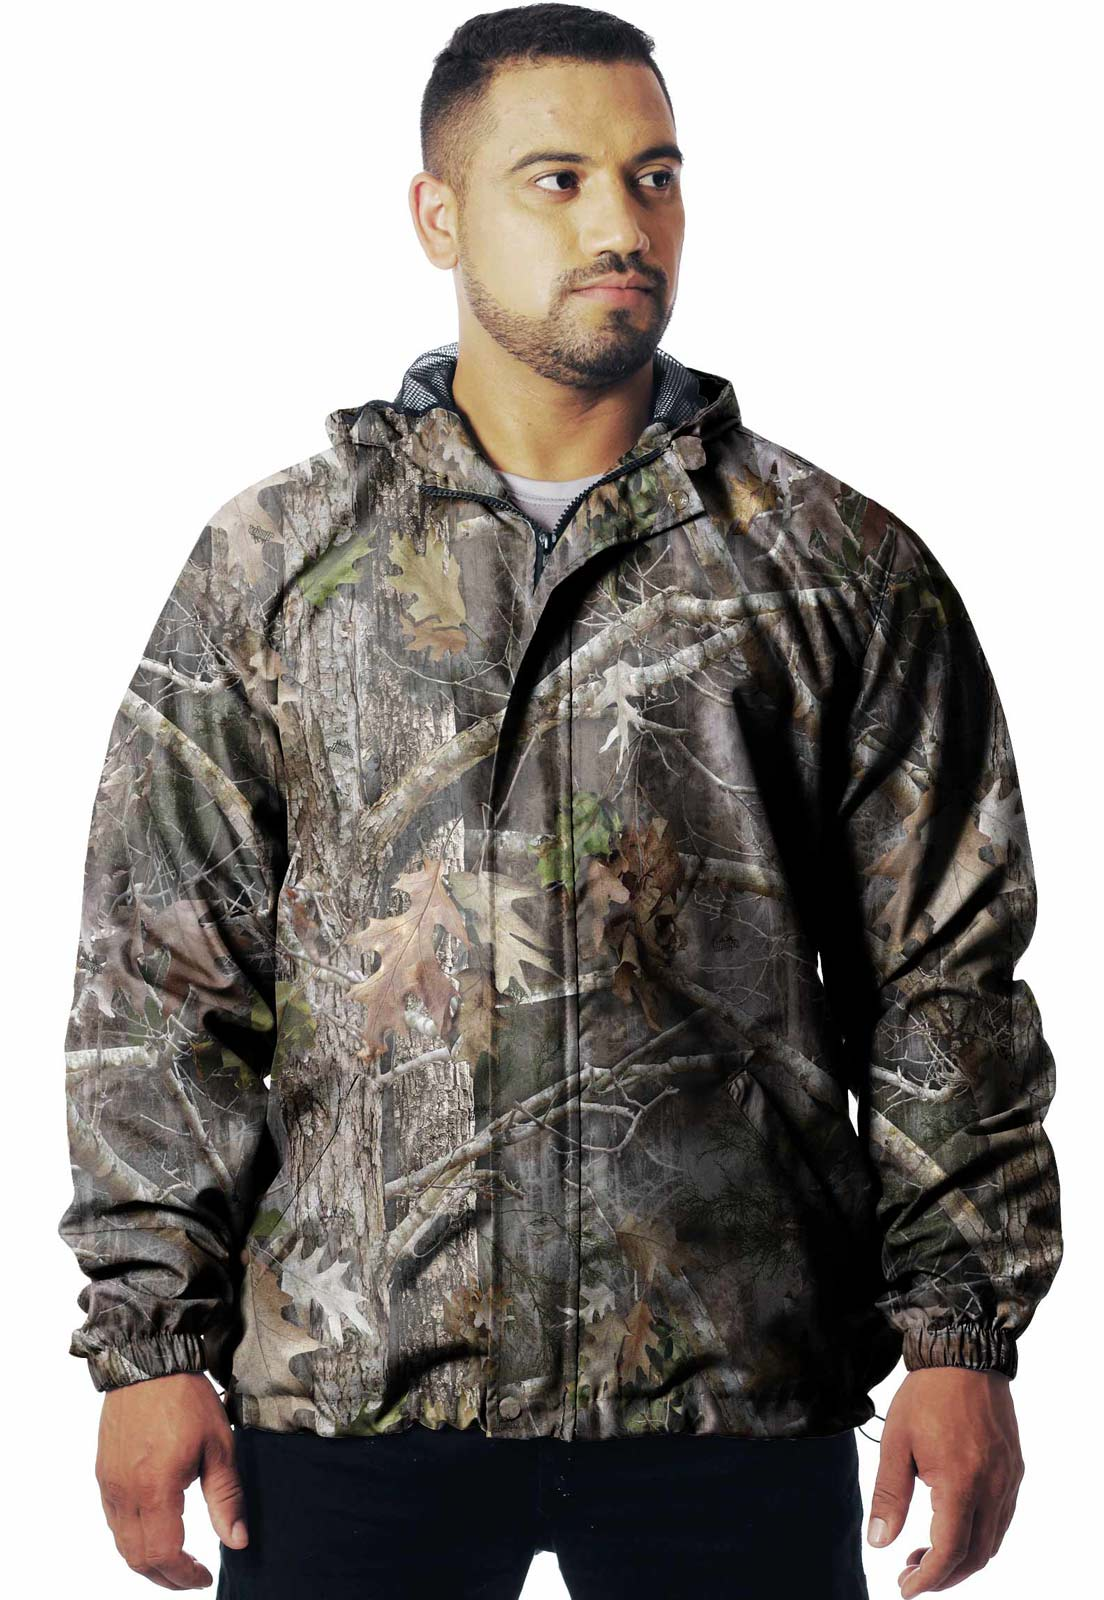 JAQUETA CORTA VENTO CAMUFLADA REALTREE  MASCULINA  - REAL HUNTER OUTDOORS